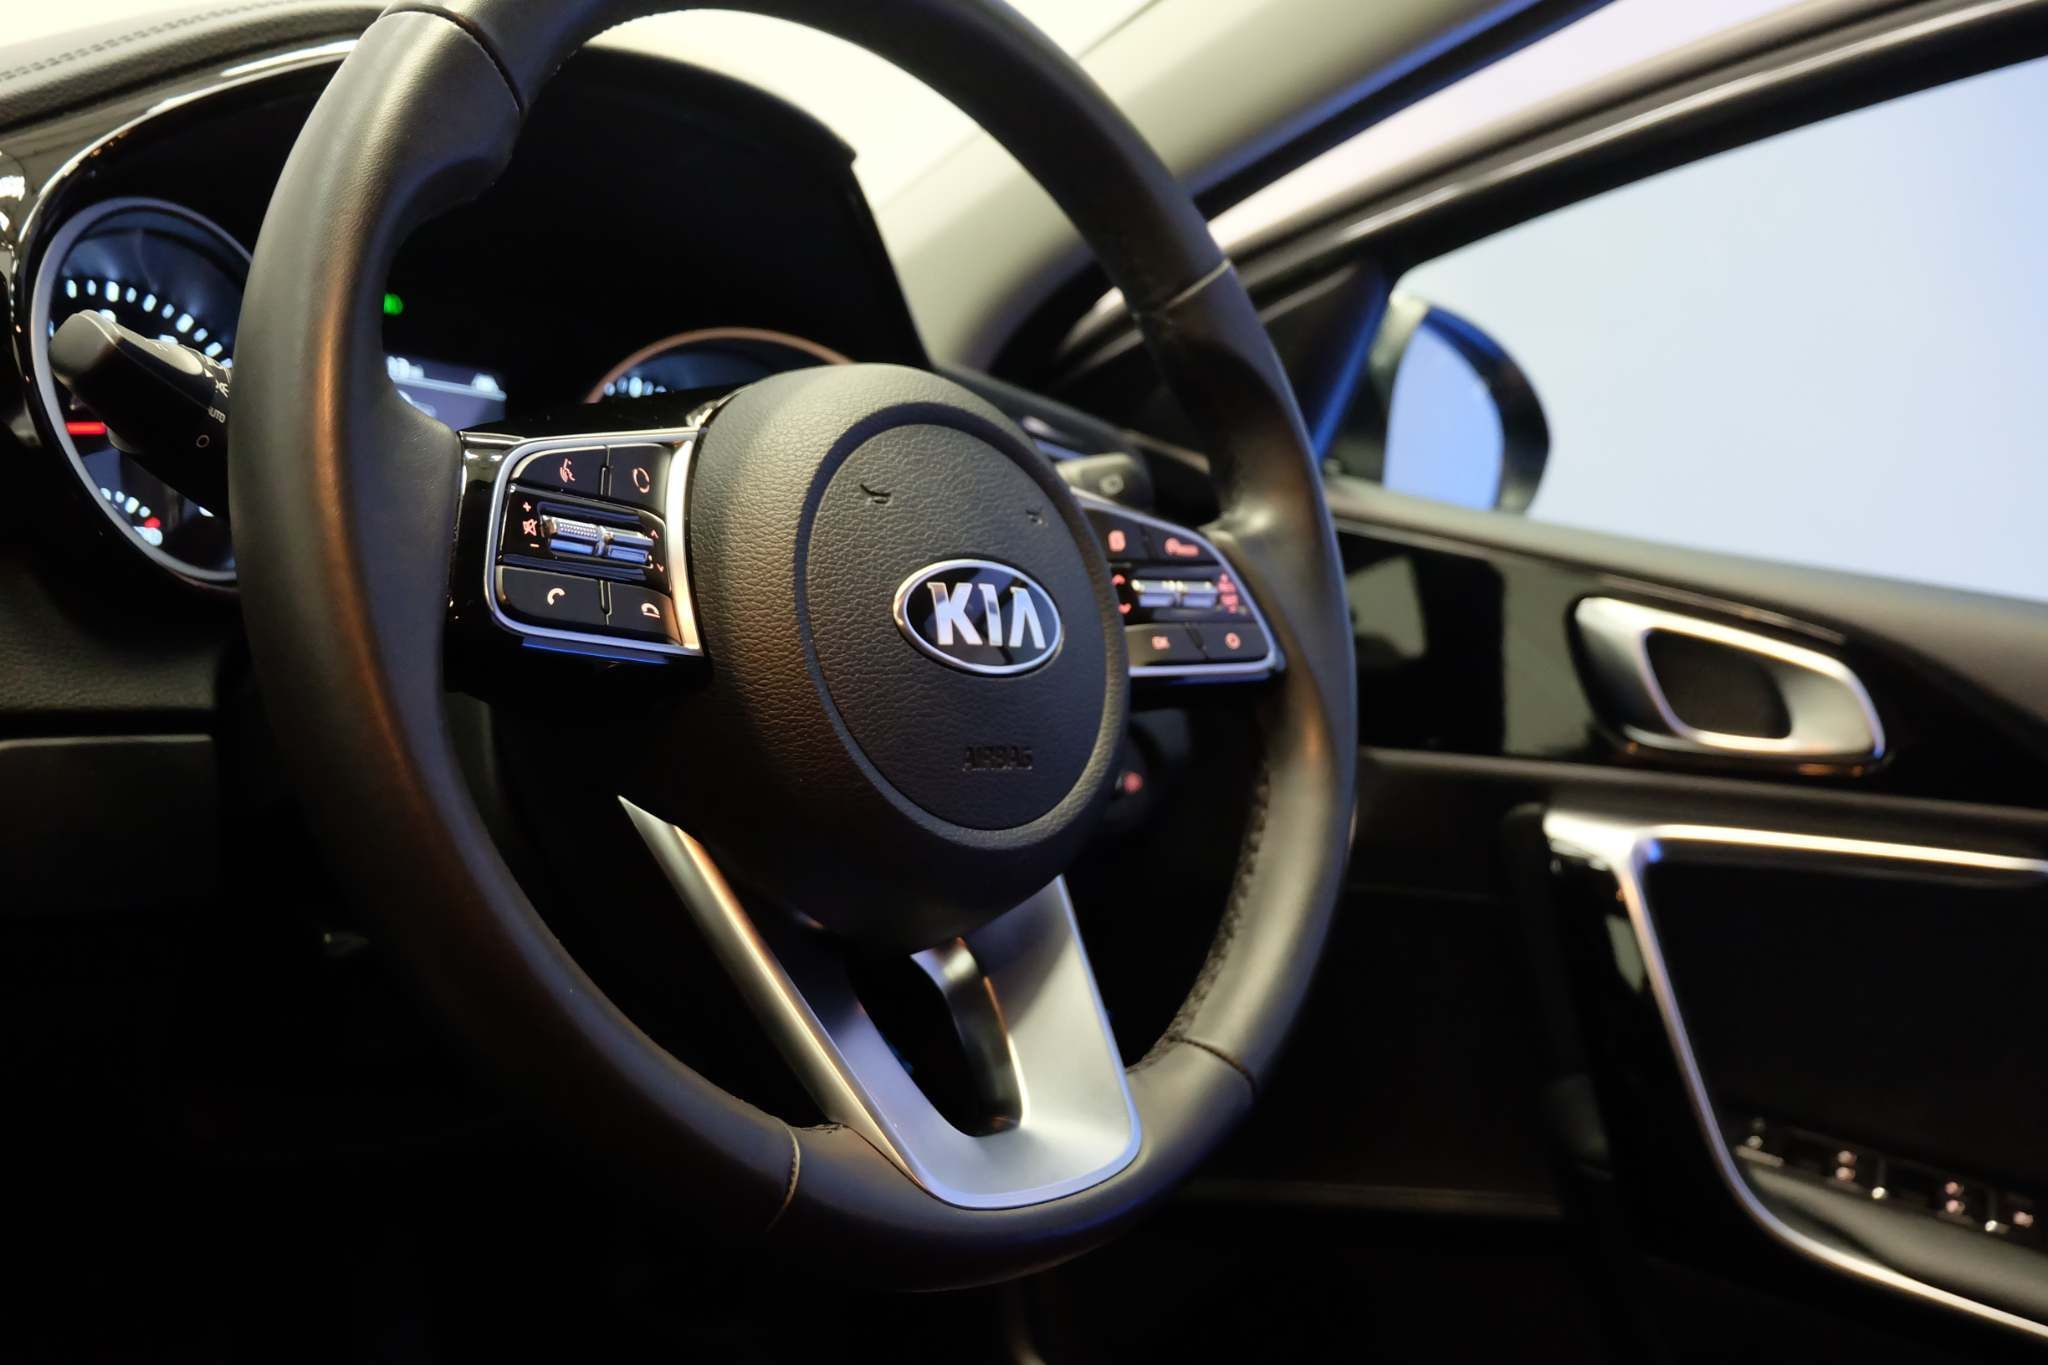 Used Kia Ceed 1.4 T-Gdi 3 Sportswagon Dct (s/s) 5dr